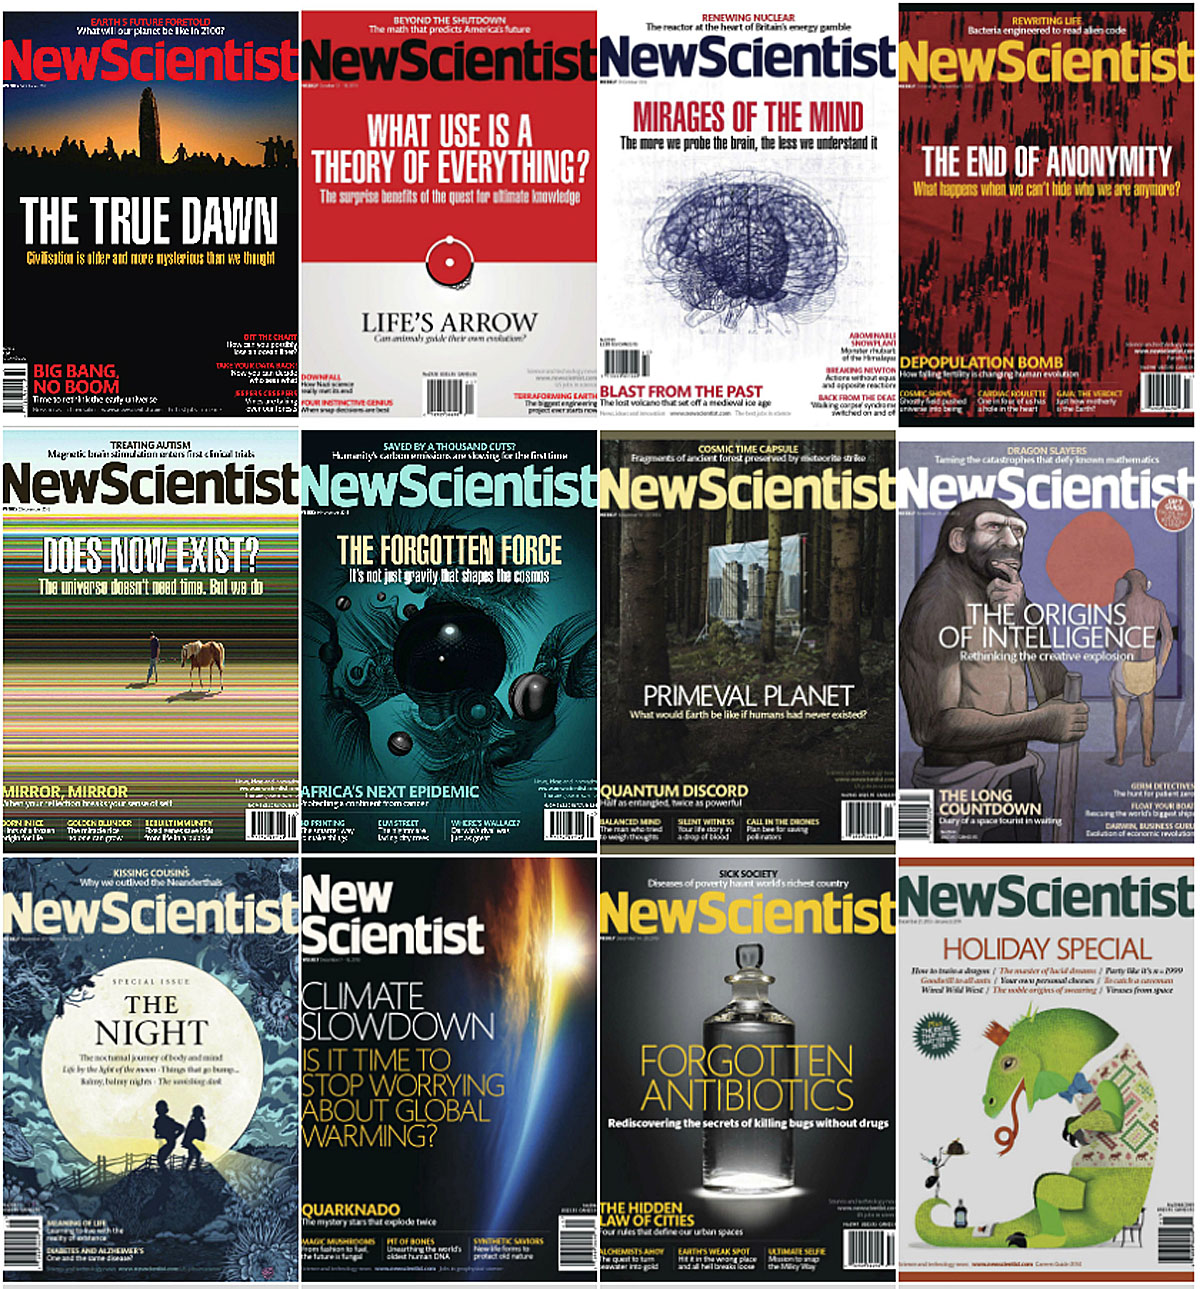 New Scientist - Full Year 2013 Issues Collection free download